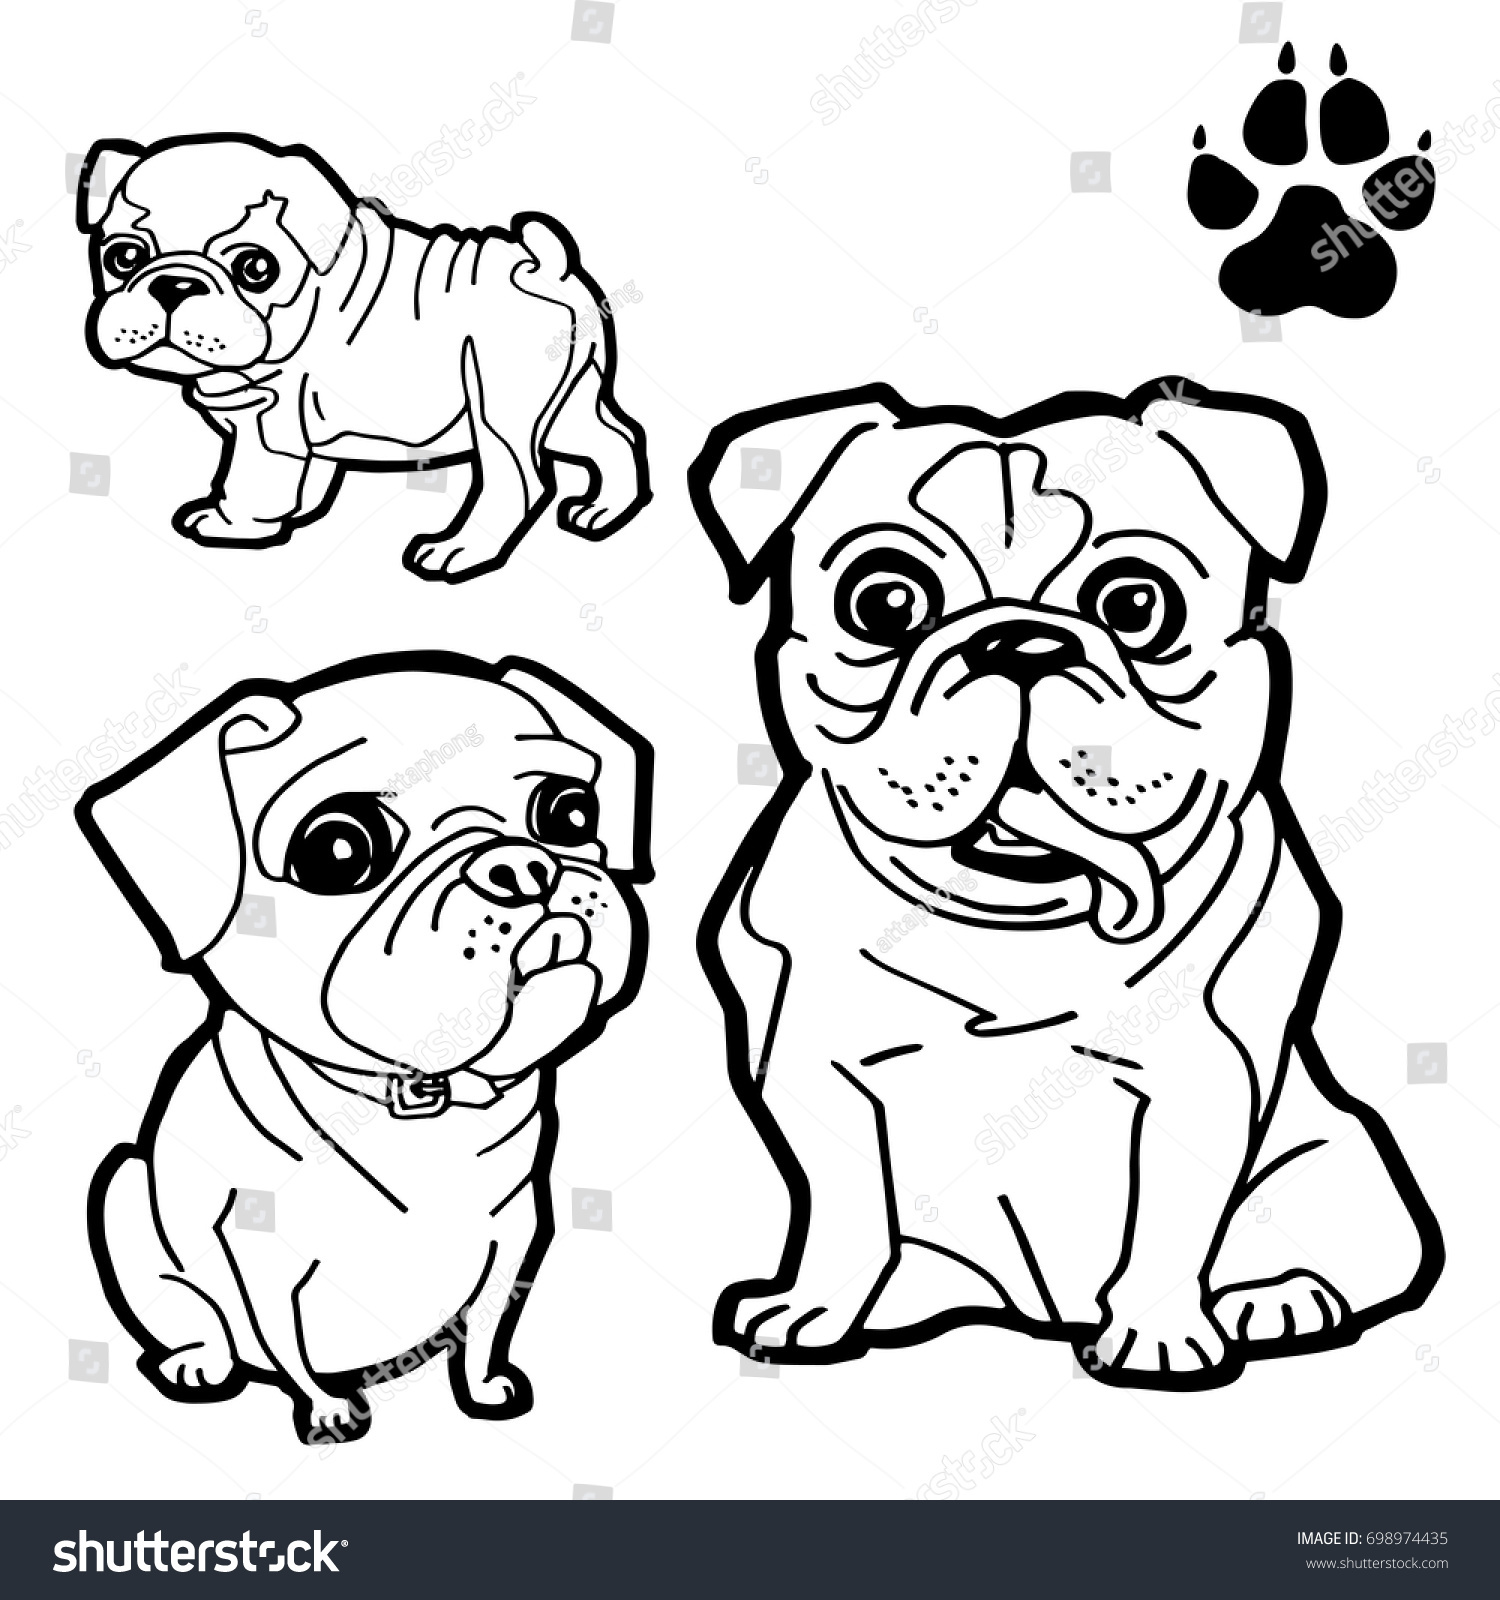 dog cartoon and dog paw print coloring book on white background vector - Print Coloring Book